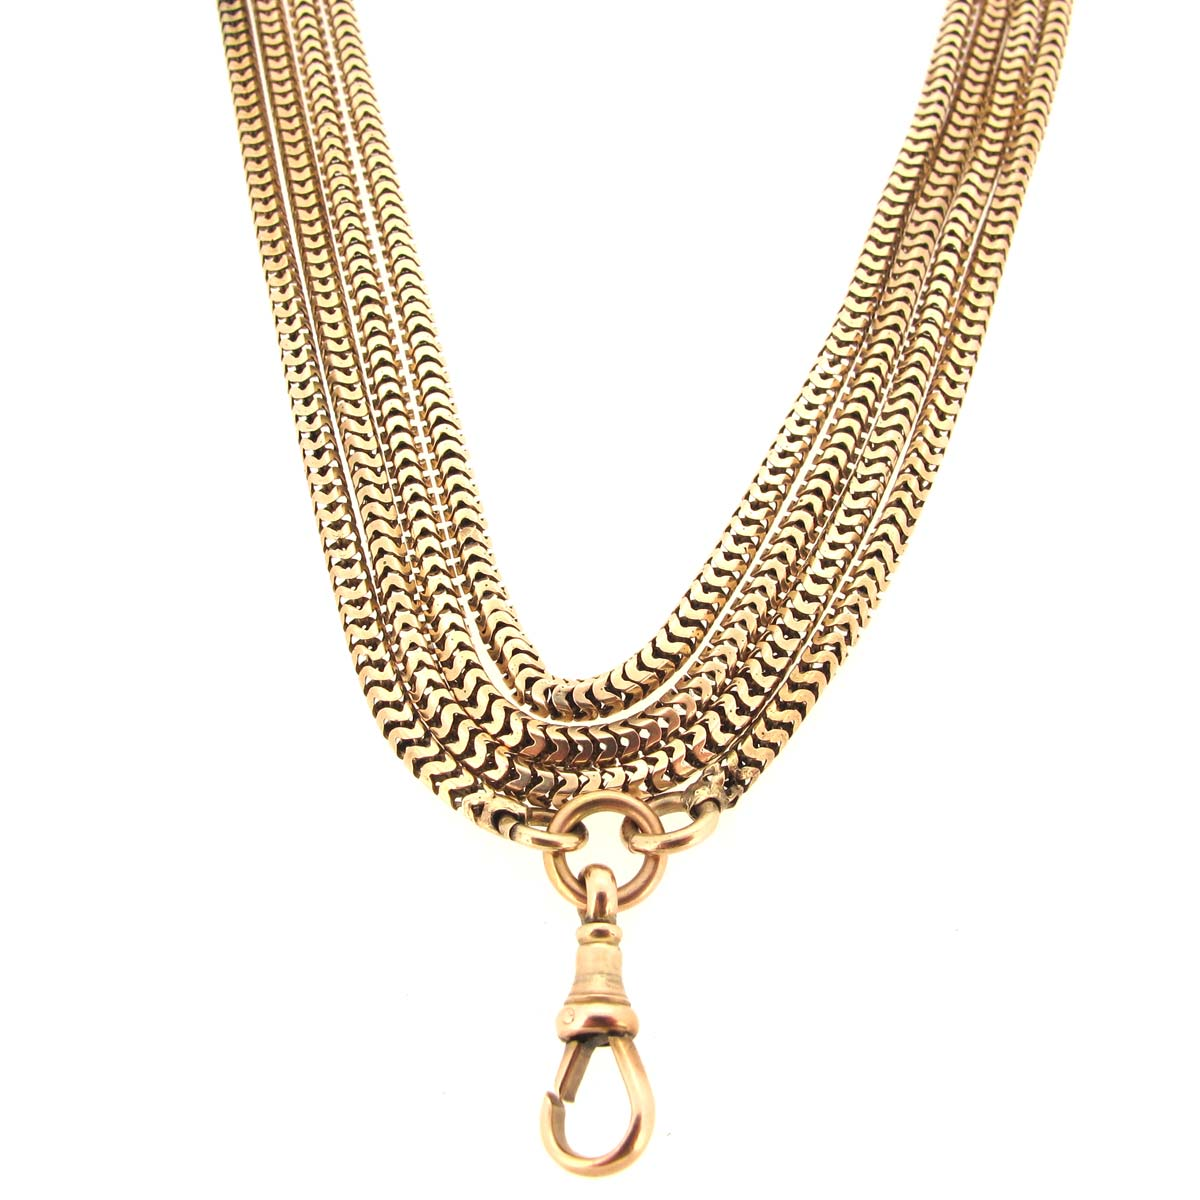 Antique Gold Guard Chain